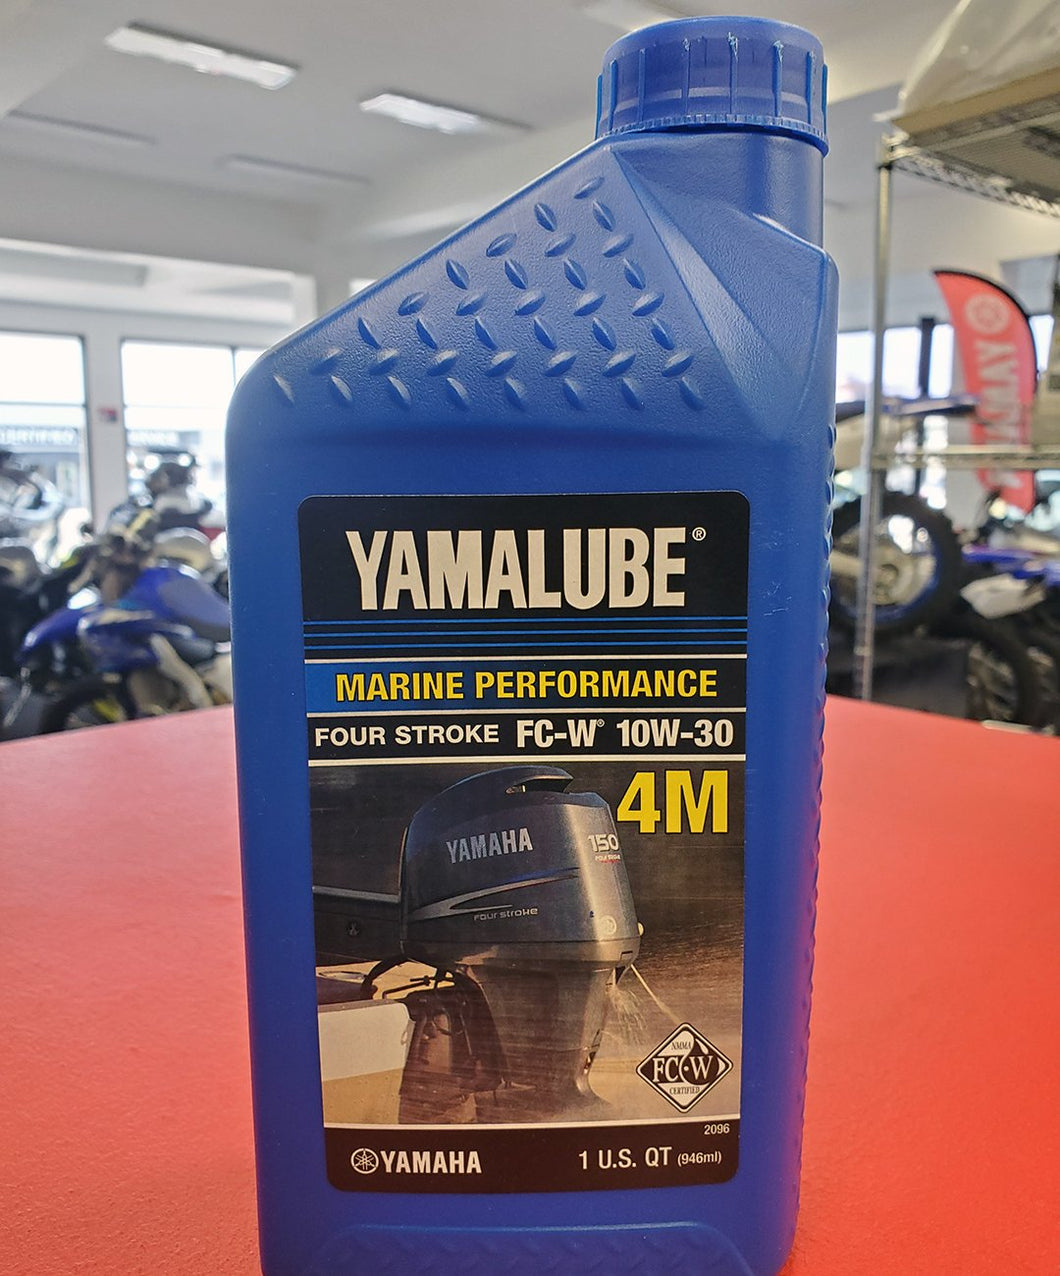 YAMALUBE 4M Outboard Engine Oil